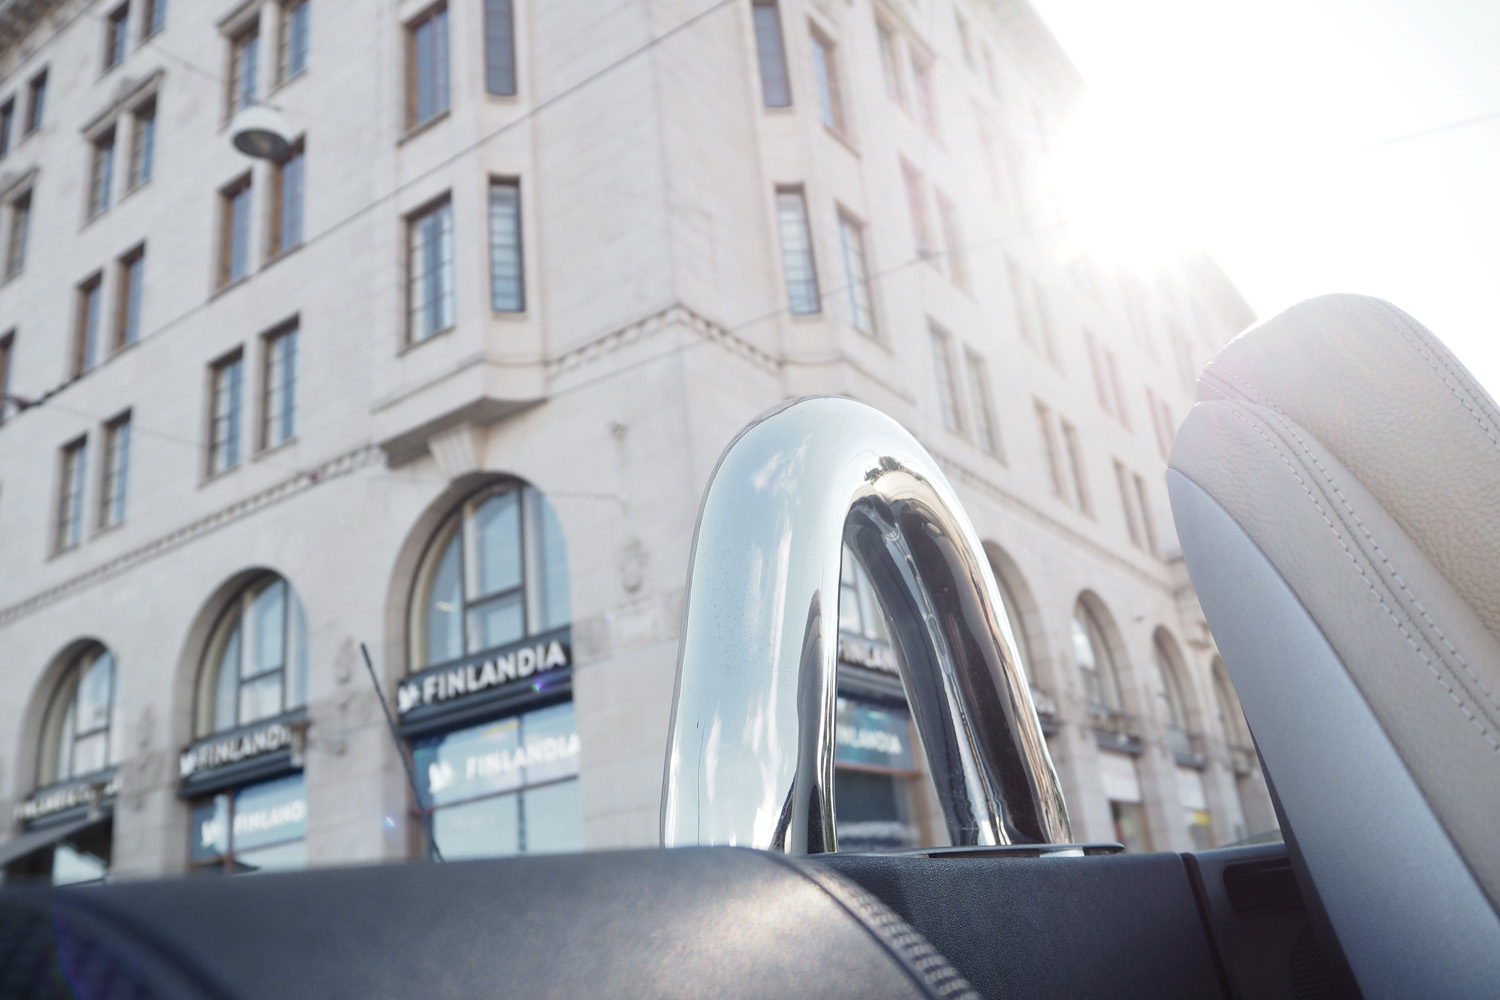 Char and the city - Summertime in Helsinki, Finland - sun, ice cream and a converible! Read more on the blog: idealista.fi/charandthecity